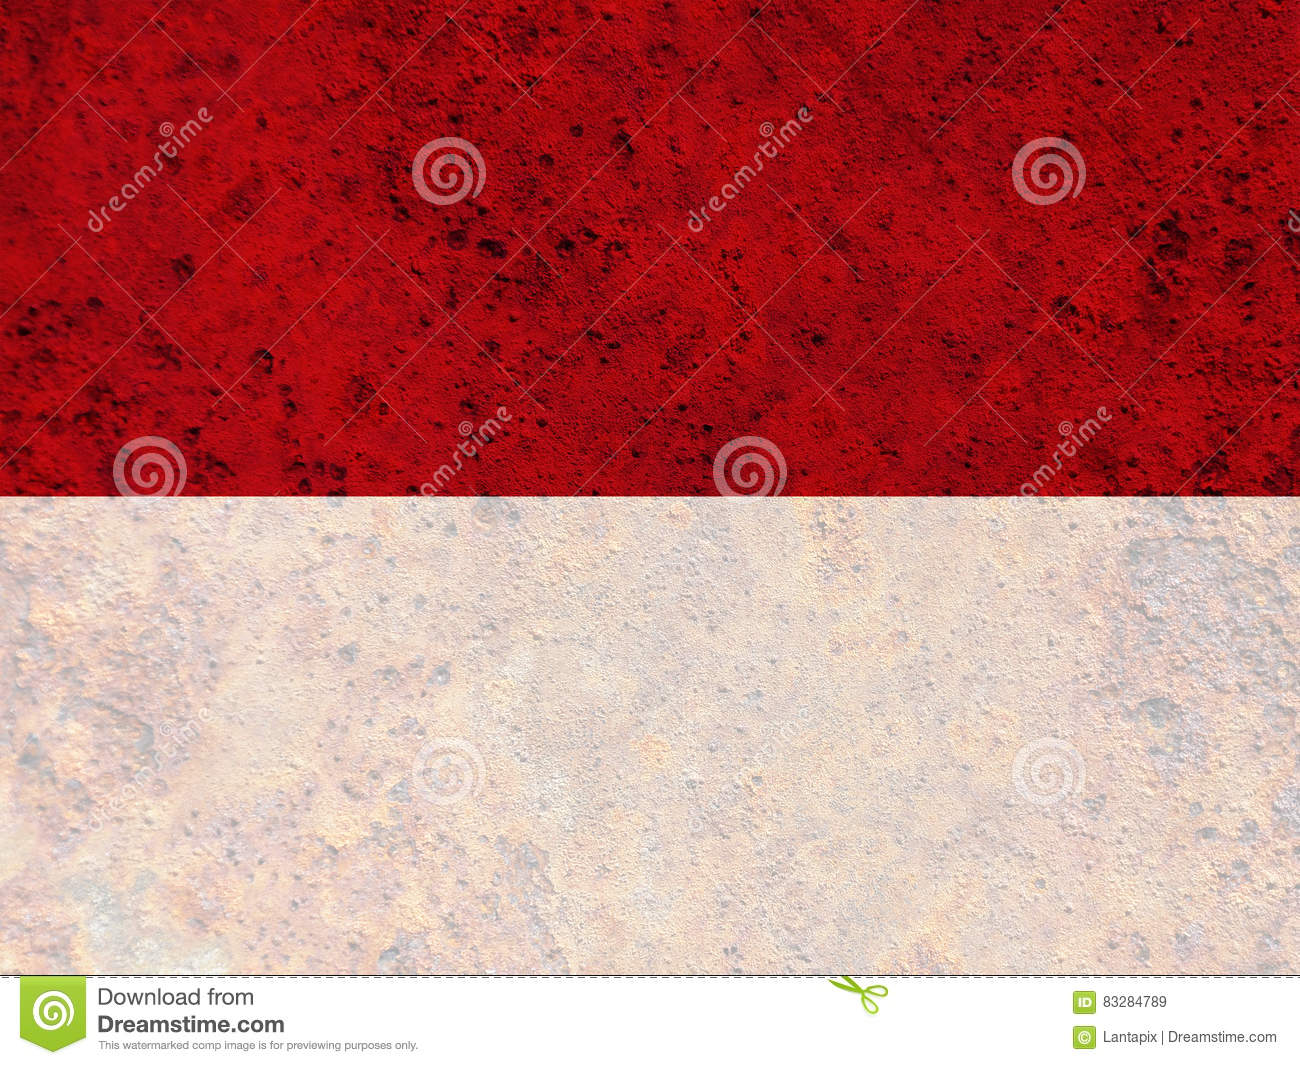 Textured flag of Indonesia in nice colors